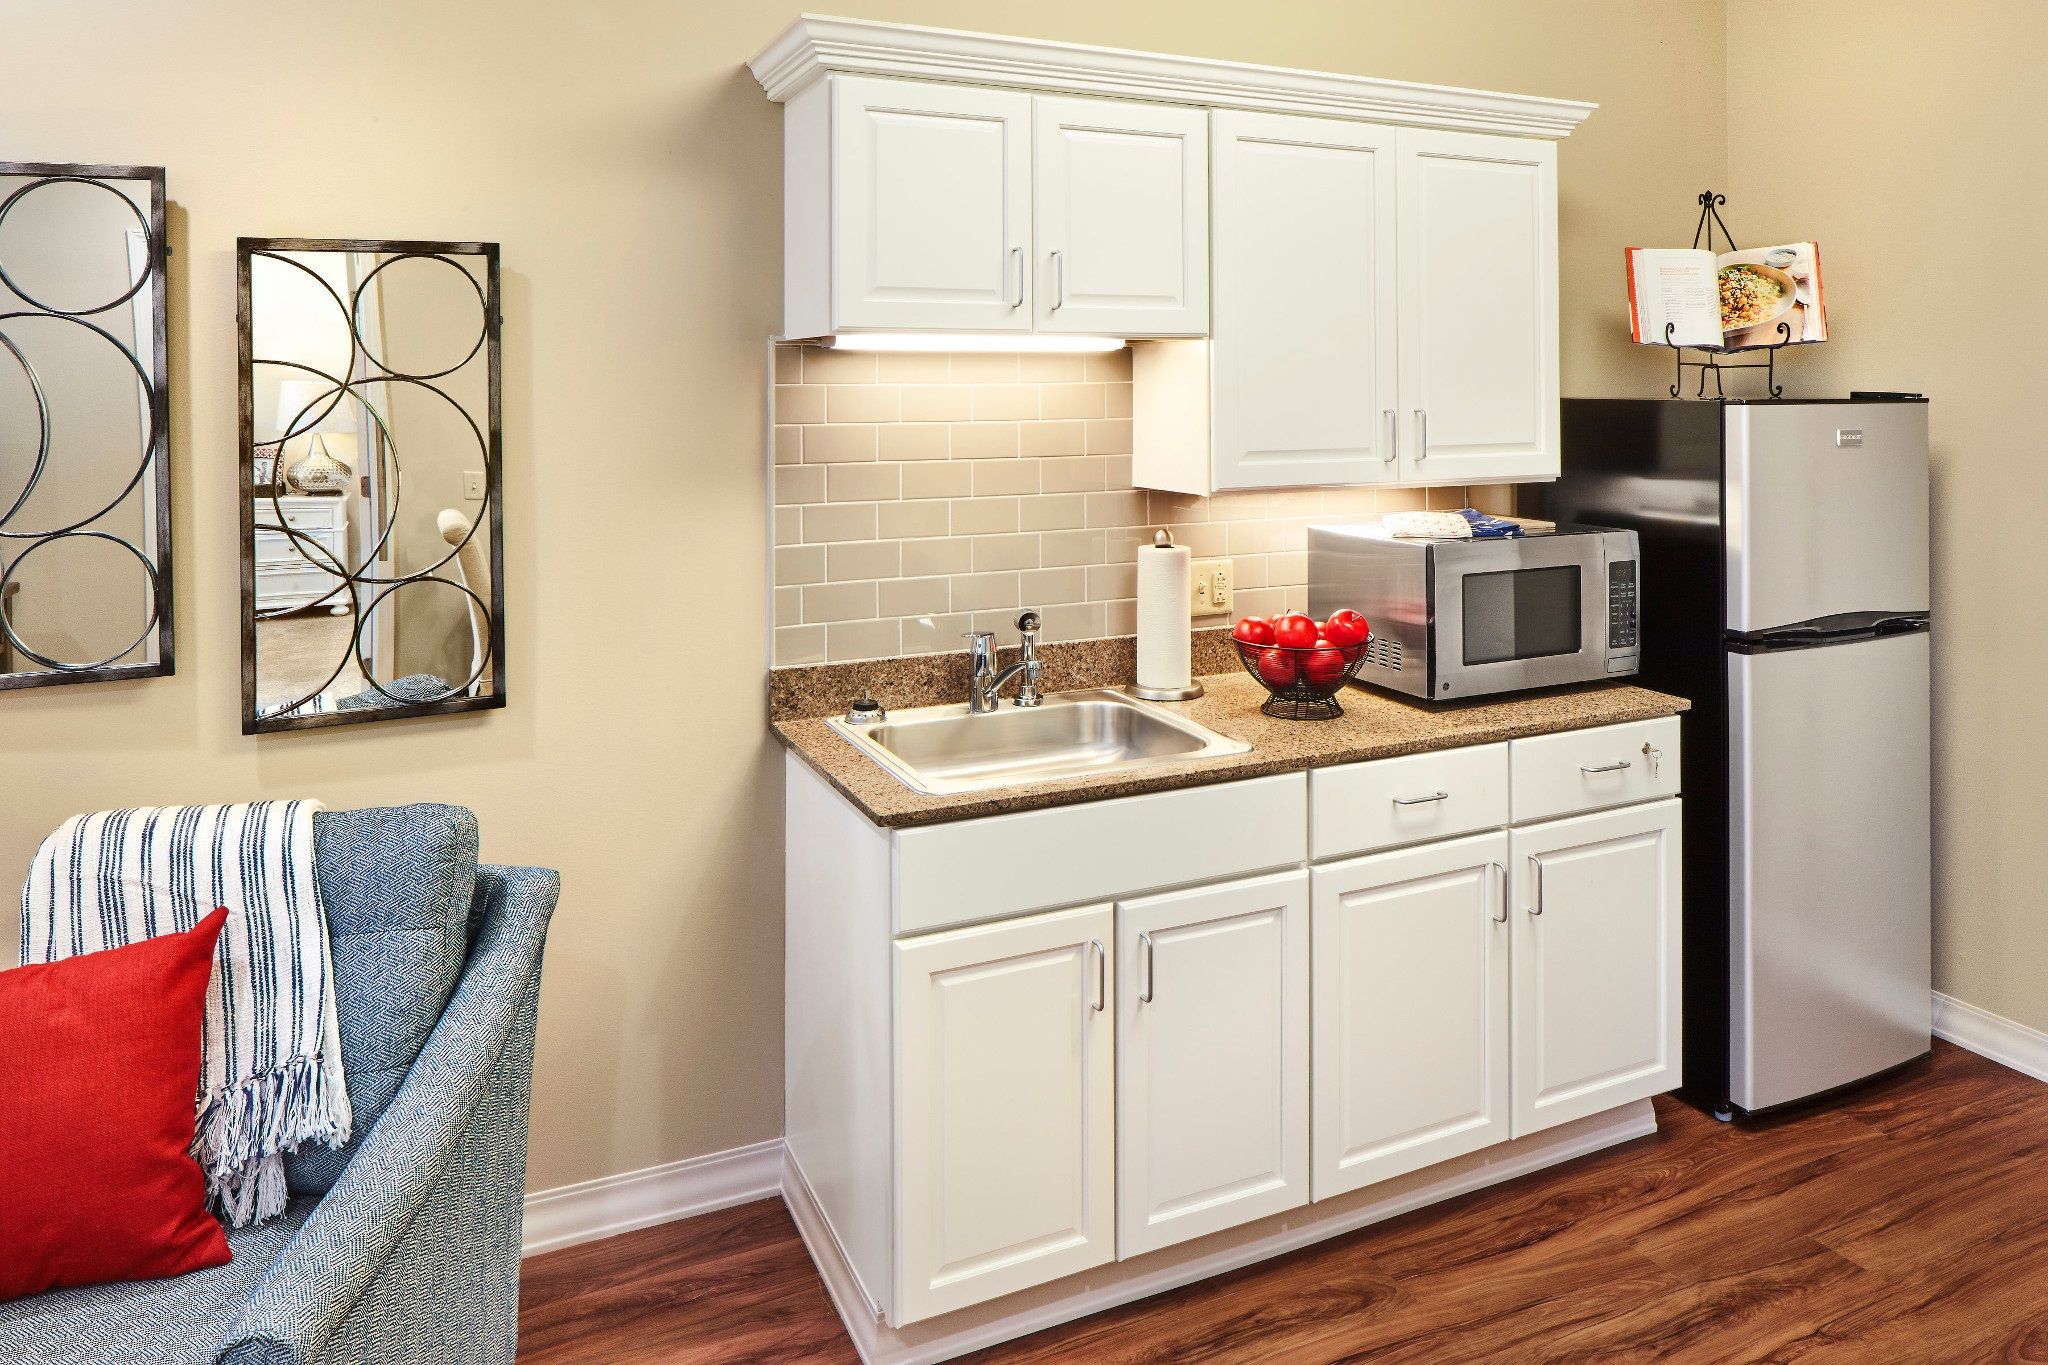 The Sheridan at Overland Park image 11